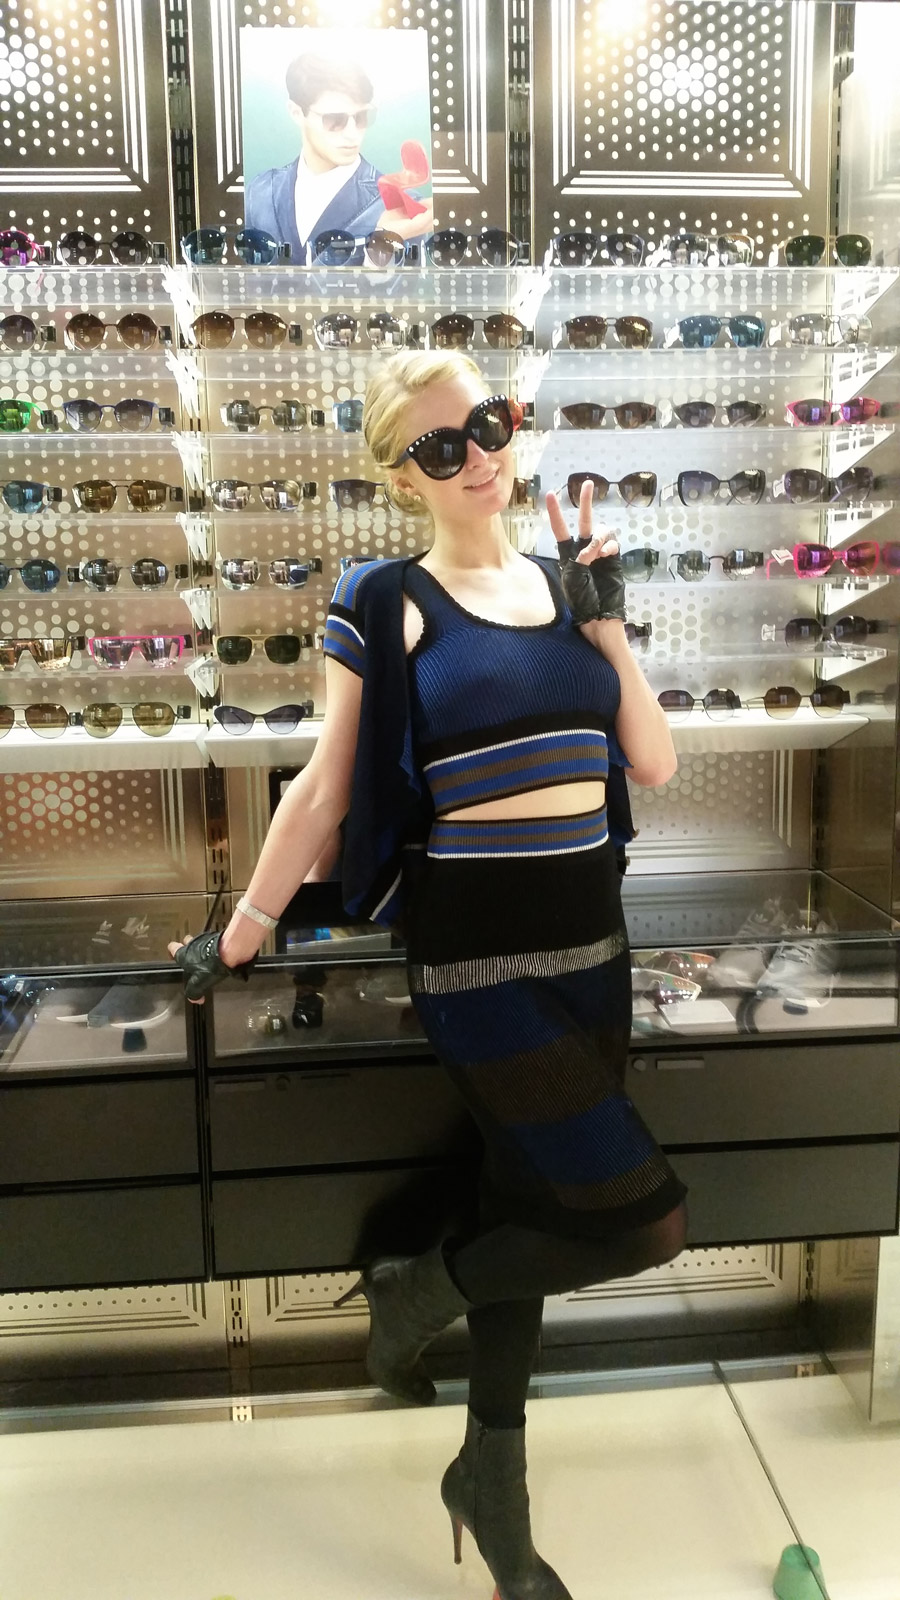 Paris Hilton during her visit, this Wednesday 21,  to Italia Independent store in Milan (Photo: Release)